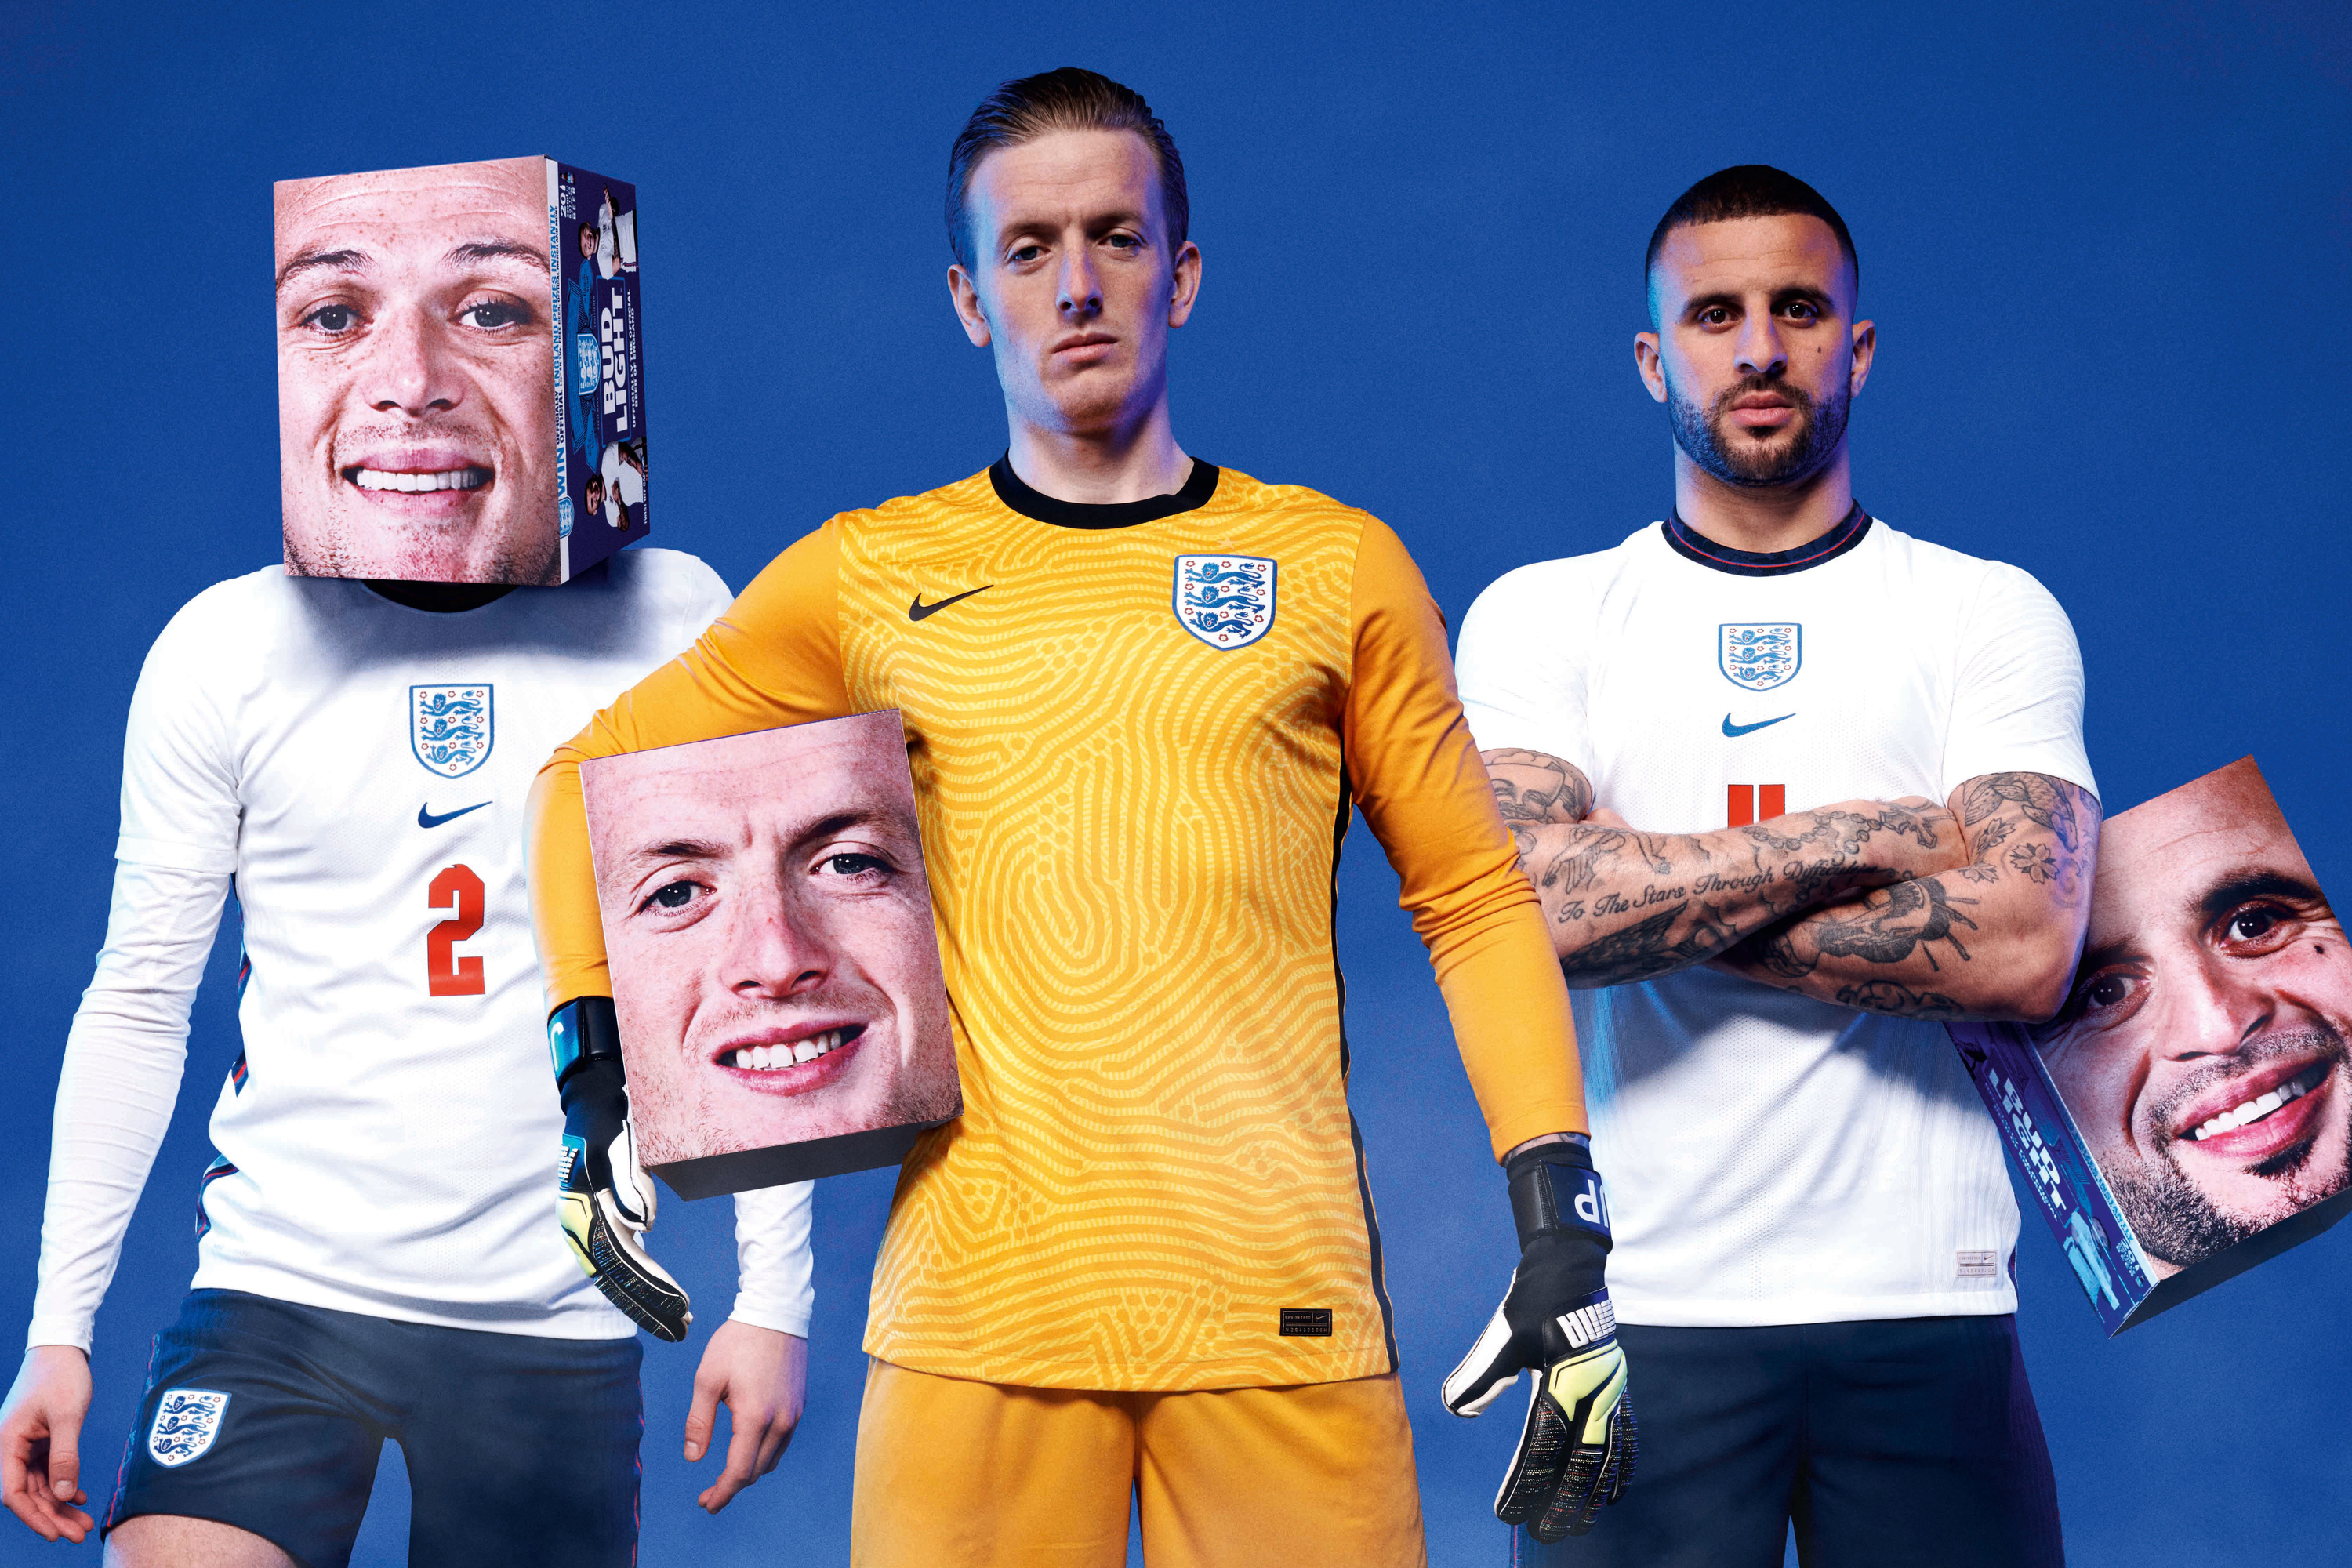 Bud Light puts soccer players' faces on its boxes so fans can wear them